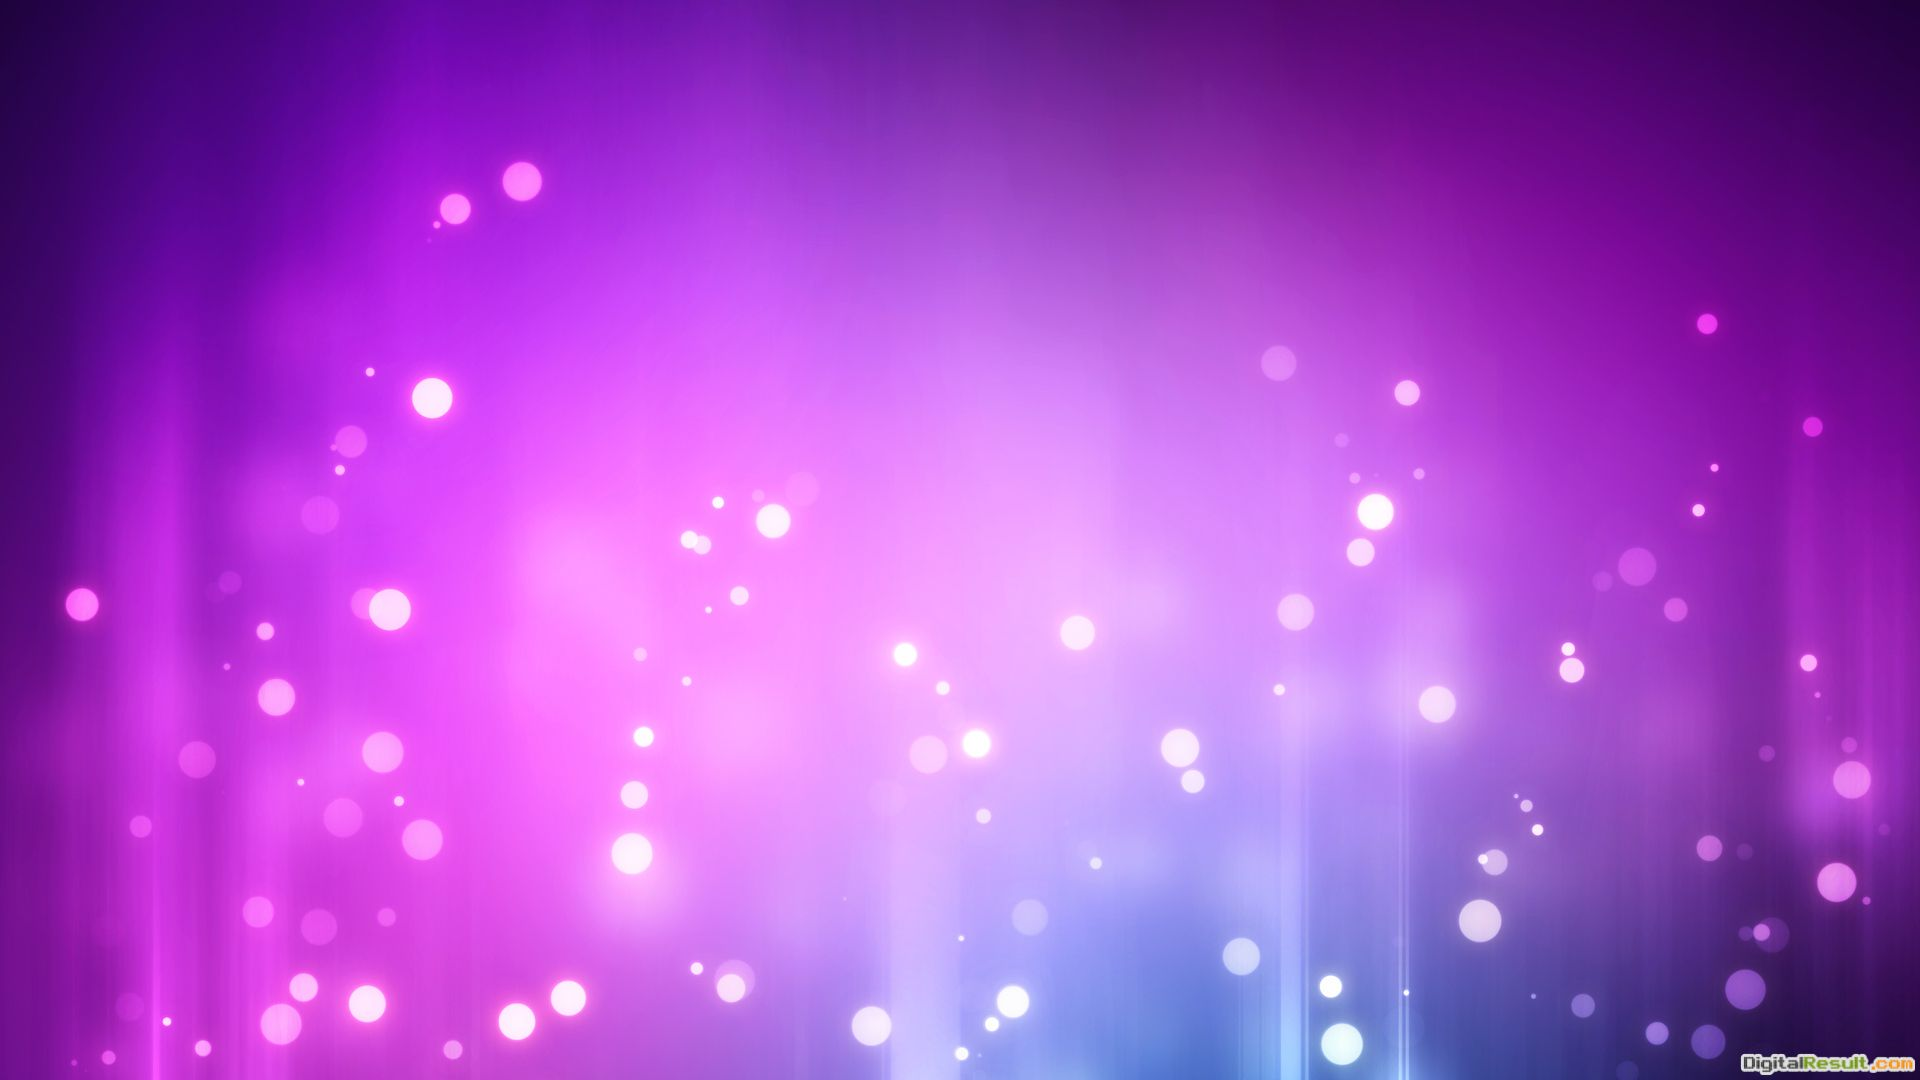 Purple Blue Sparkly Tock Lights wallpapers HD free262595 1567